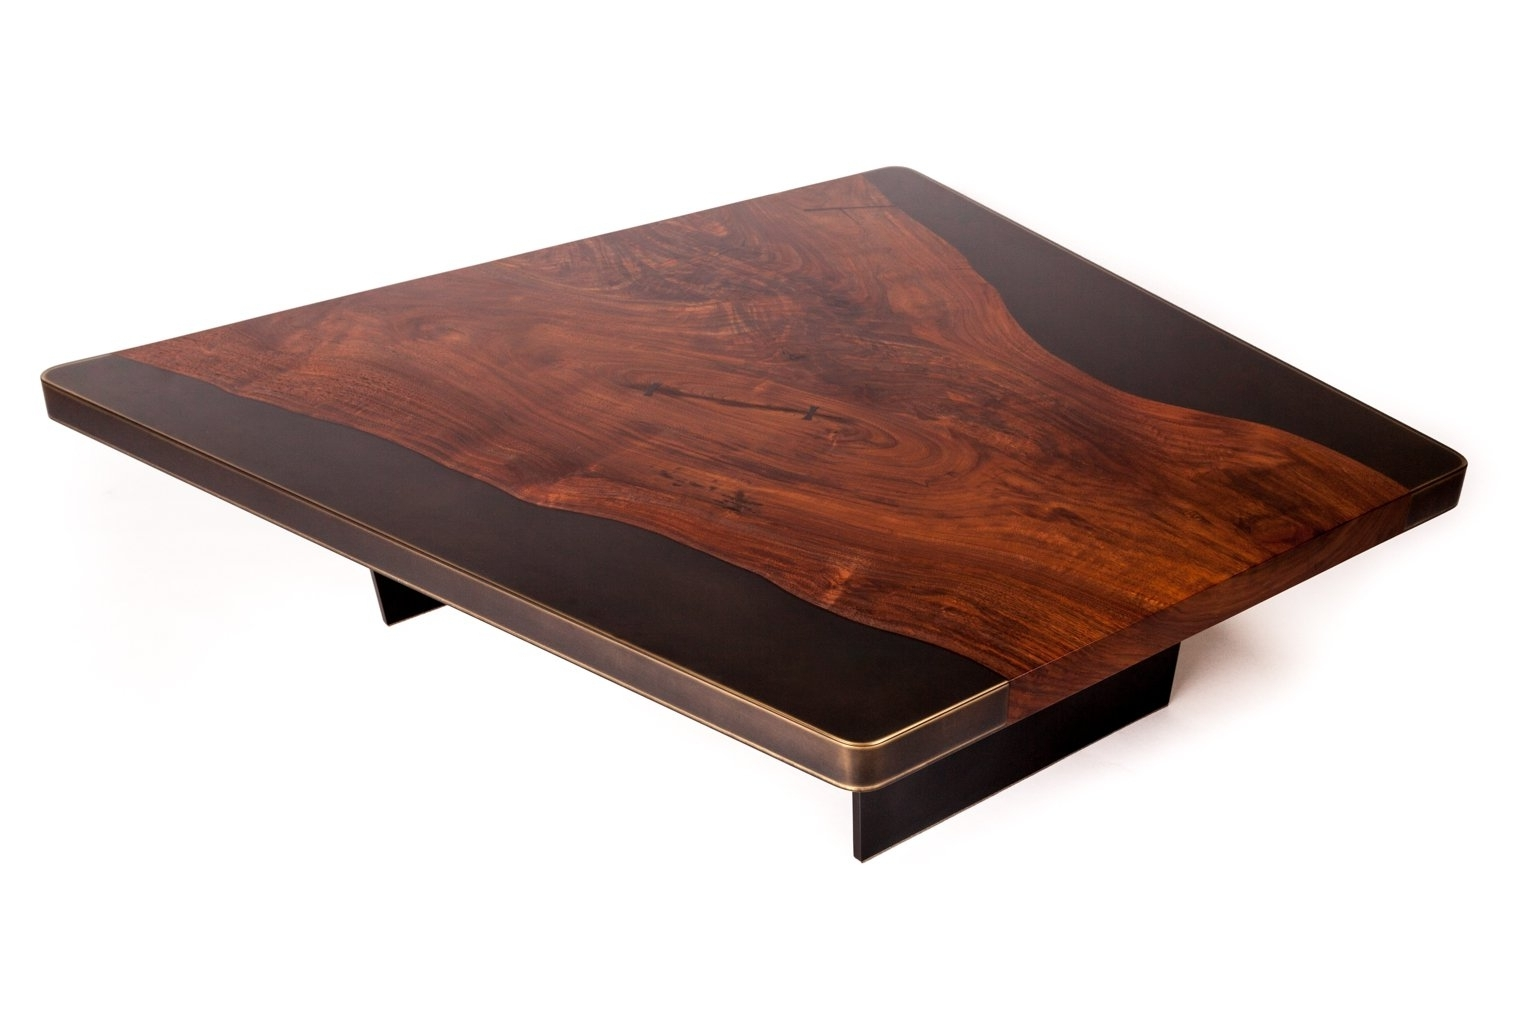 Nola Cocktail Table, Customizable Wood, Metal And Resin For Sale At With Regard To 2018 Nola Cocktail Tables (View 2 of 20)